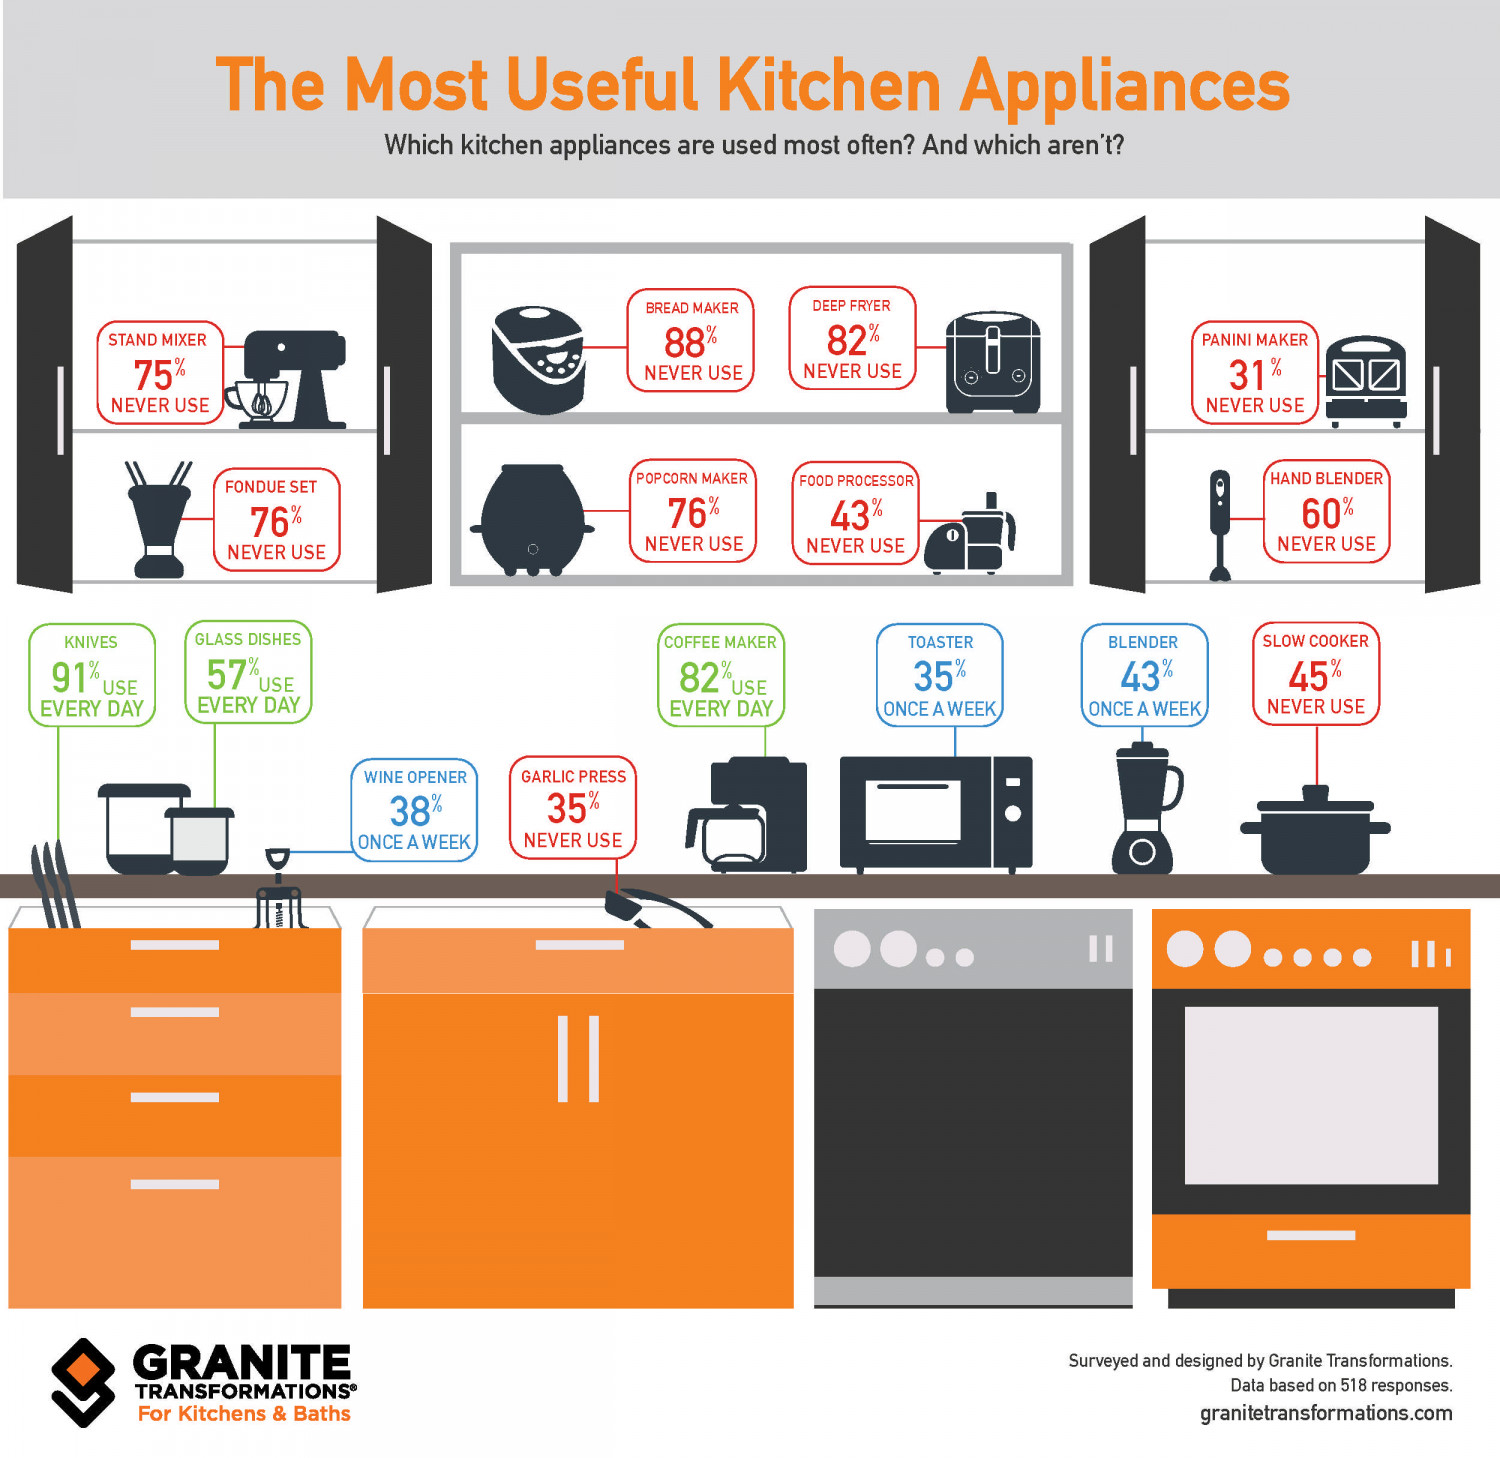 The Most Useful Kitchen Appliances | Visual.ly